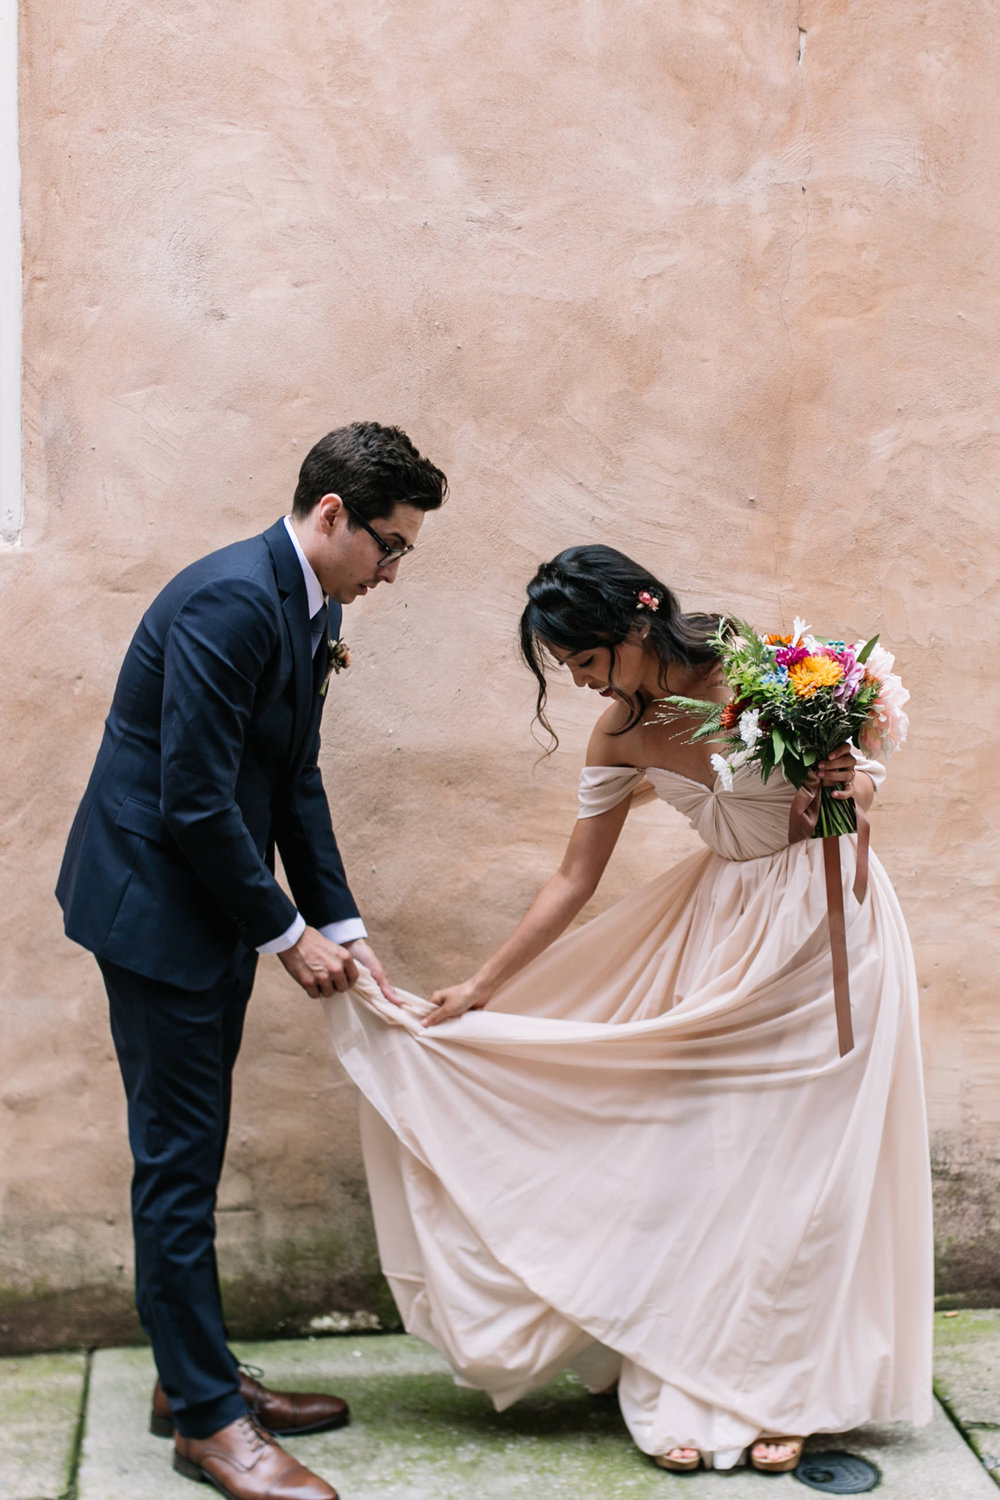 Philadelphia Wedding Planner Heart & Dash | Old City Wedding at Twisted Tail | Brittney Raine Photography